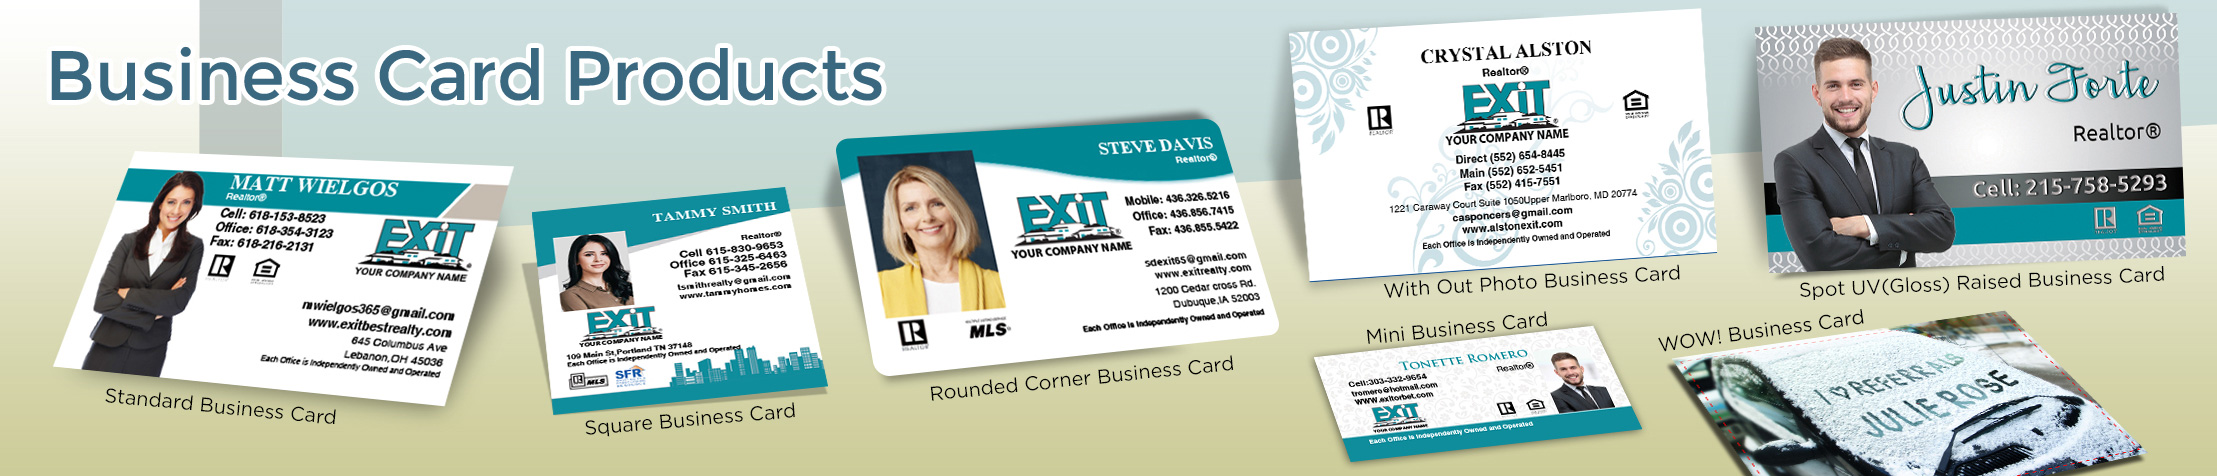 Exit Realty Real Estate Business Card Products - Exit Realty Approved Vendor - Unique, Custom Business Cards Printed on Quality Stock with Creative Designs for Realtors | BestPrintBuy.com